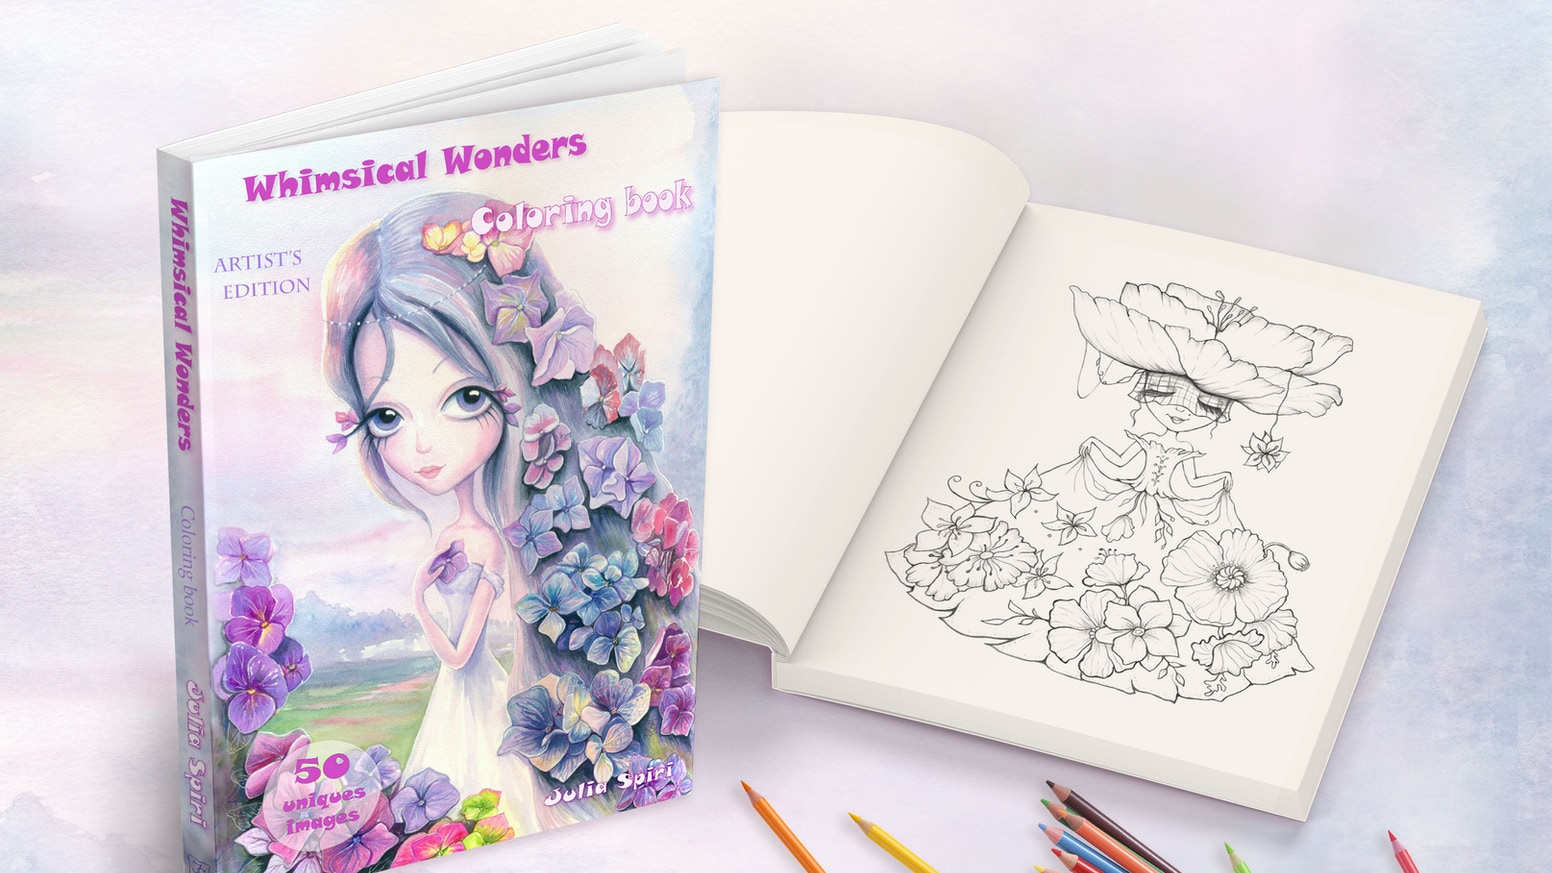 Get your Adult Coloring Book - Whimsical Wonders!